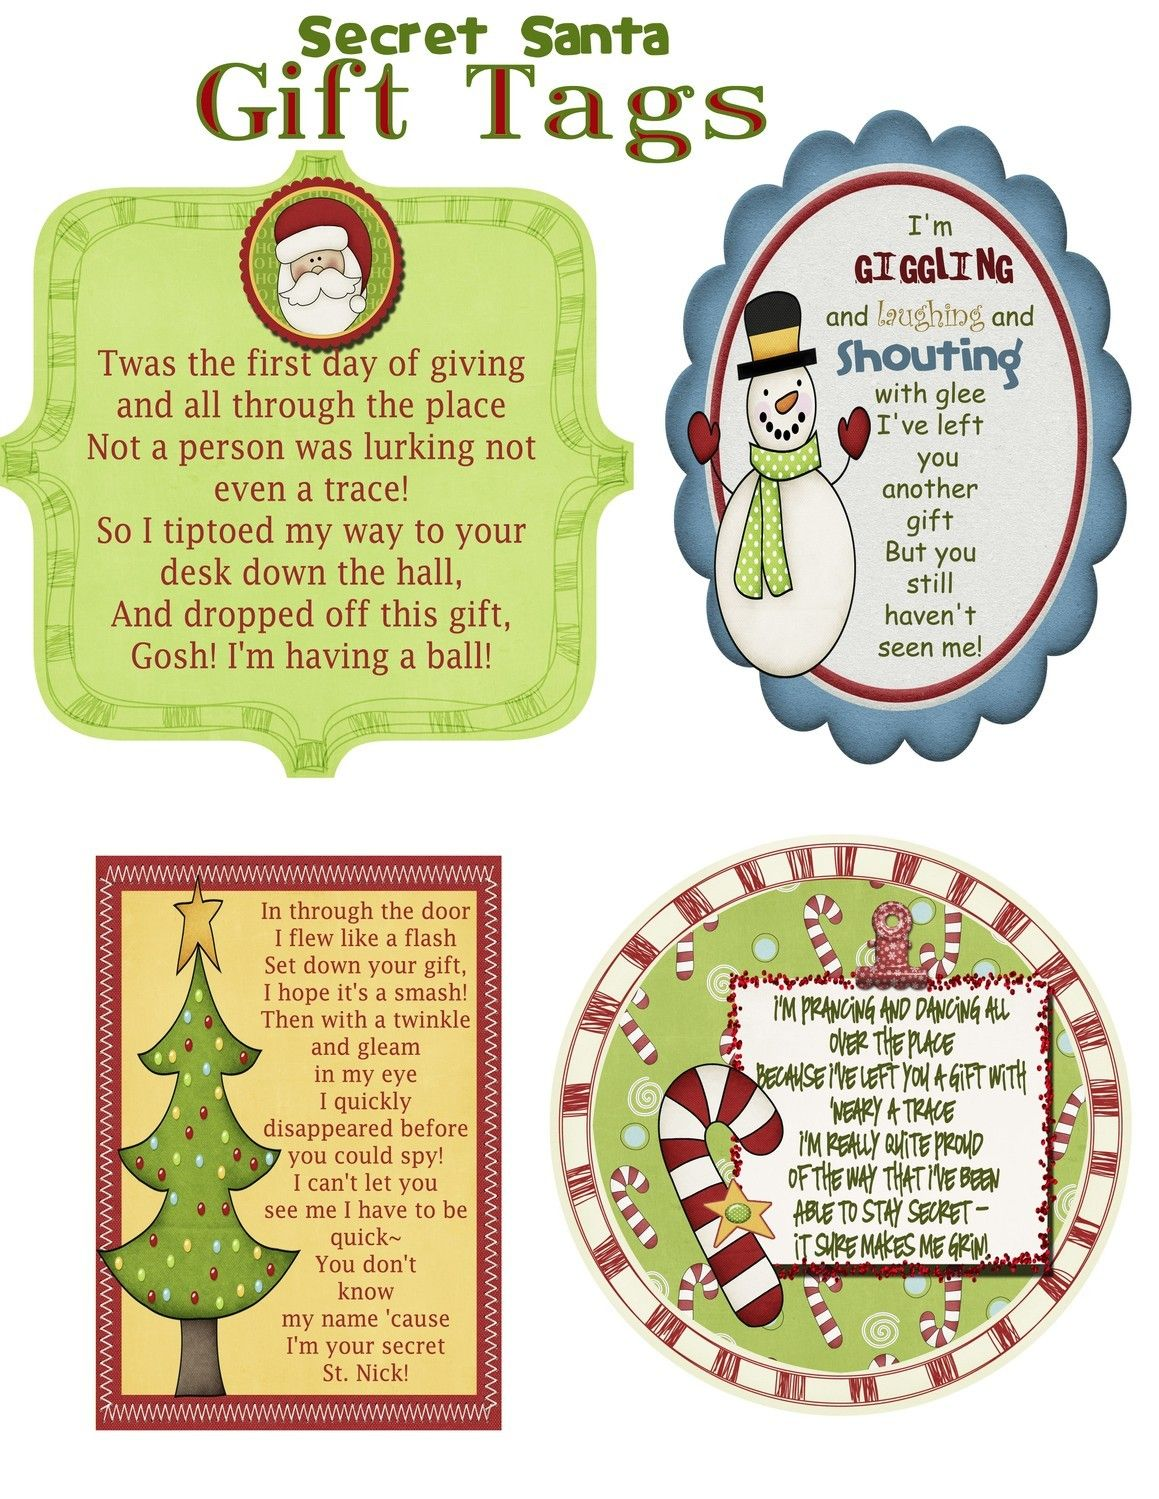 Secret Santa Gift Tag Poem Pdf File Organization Tips Pinterest